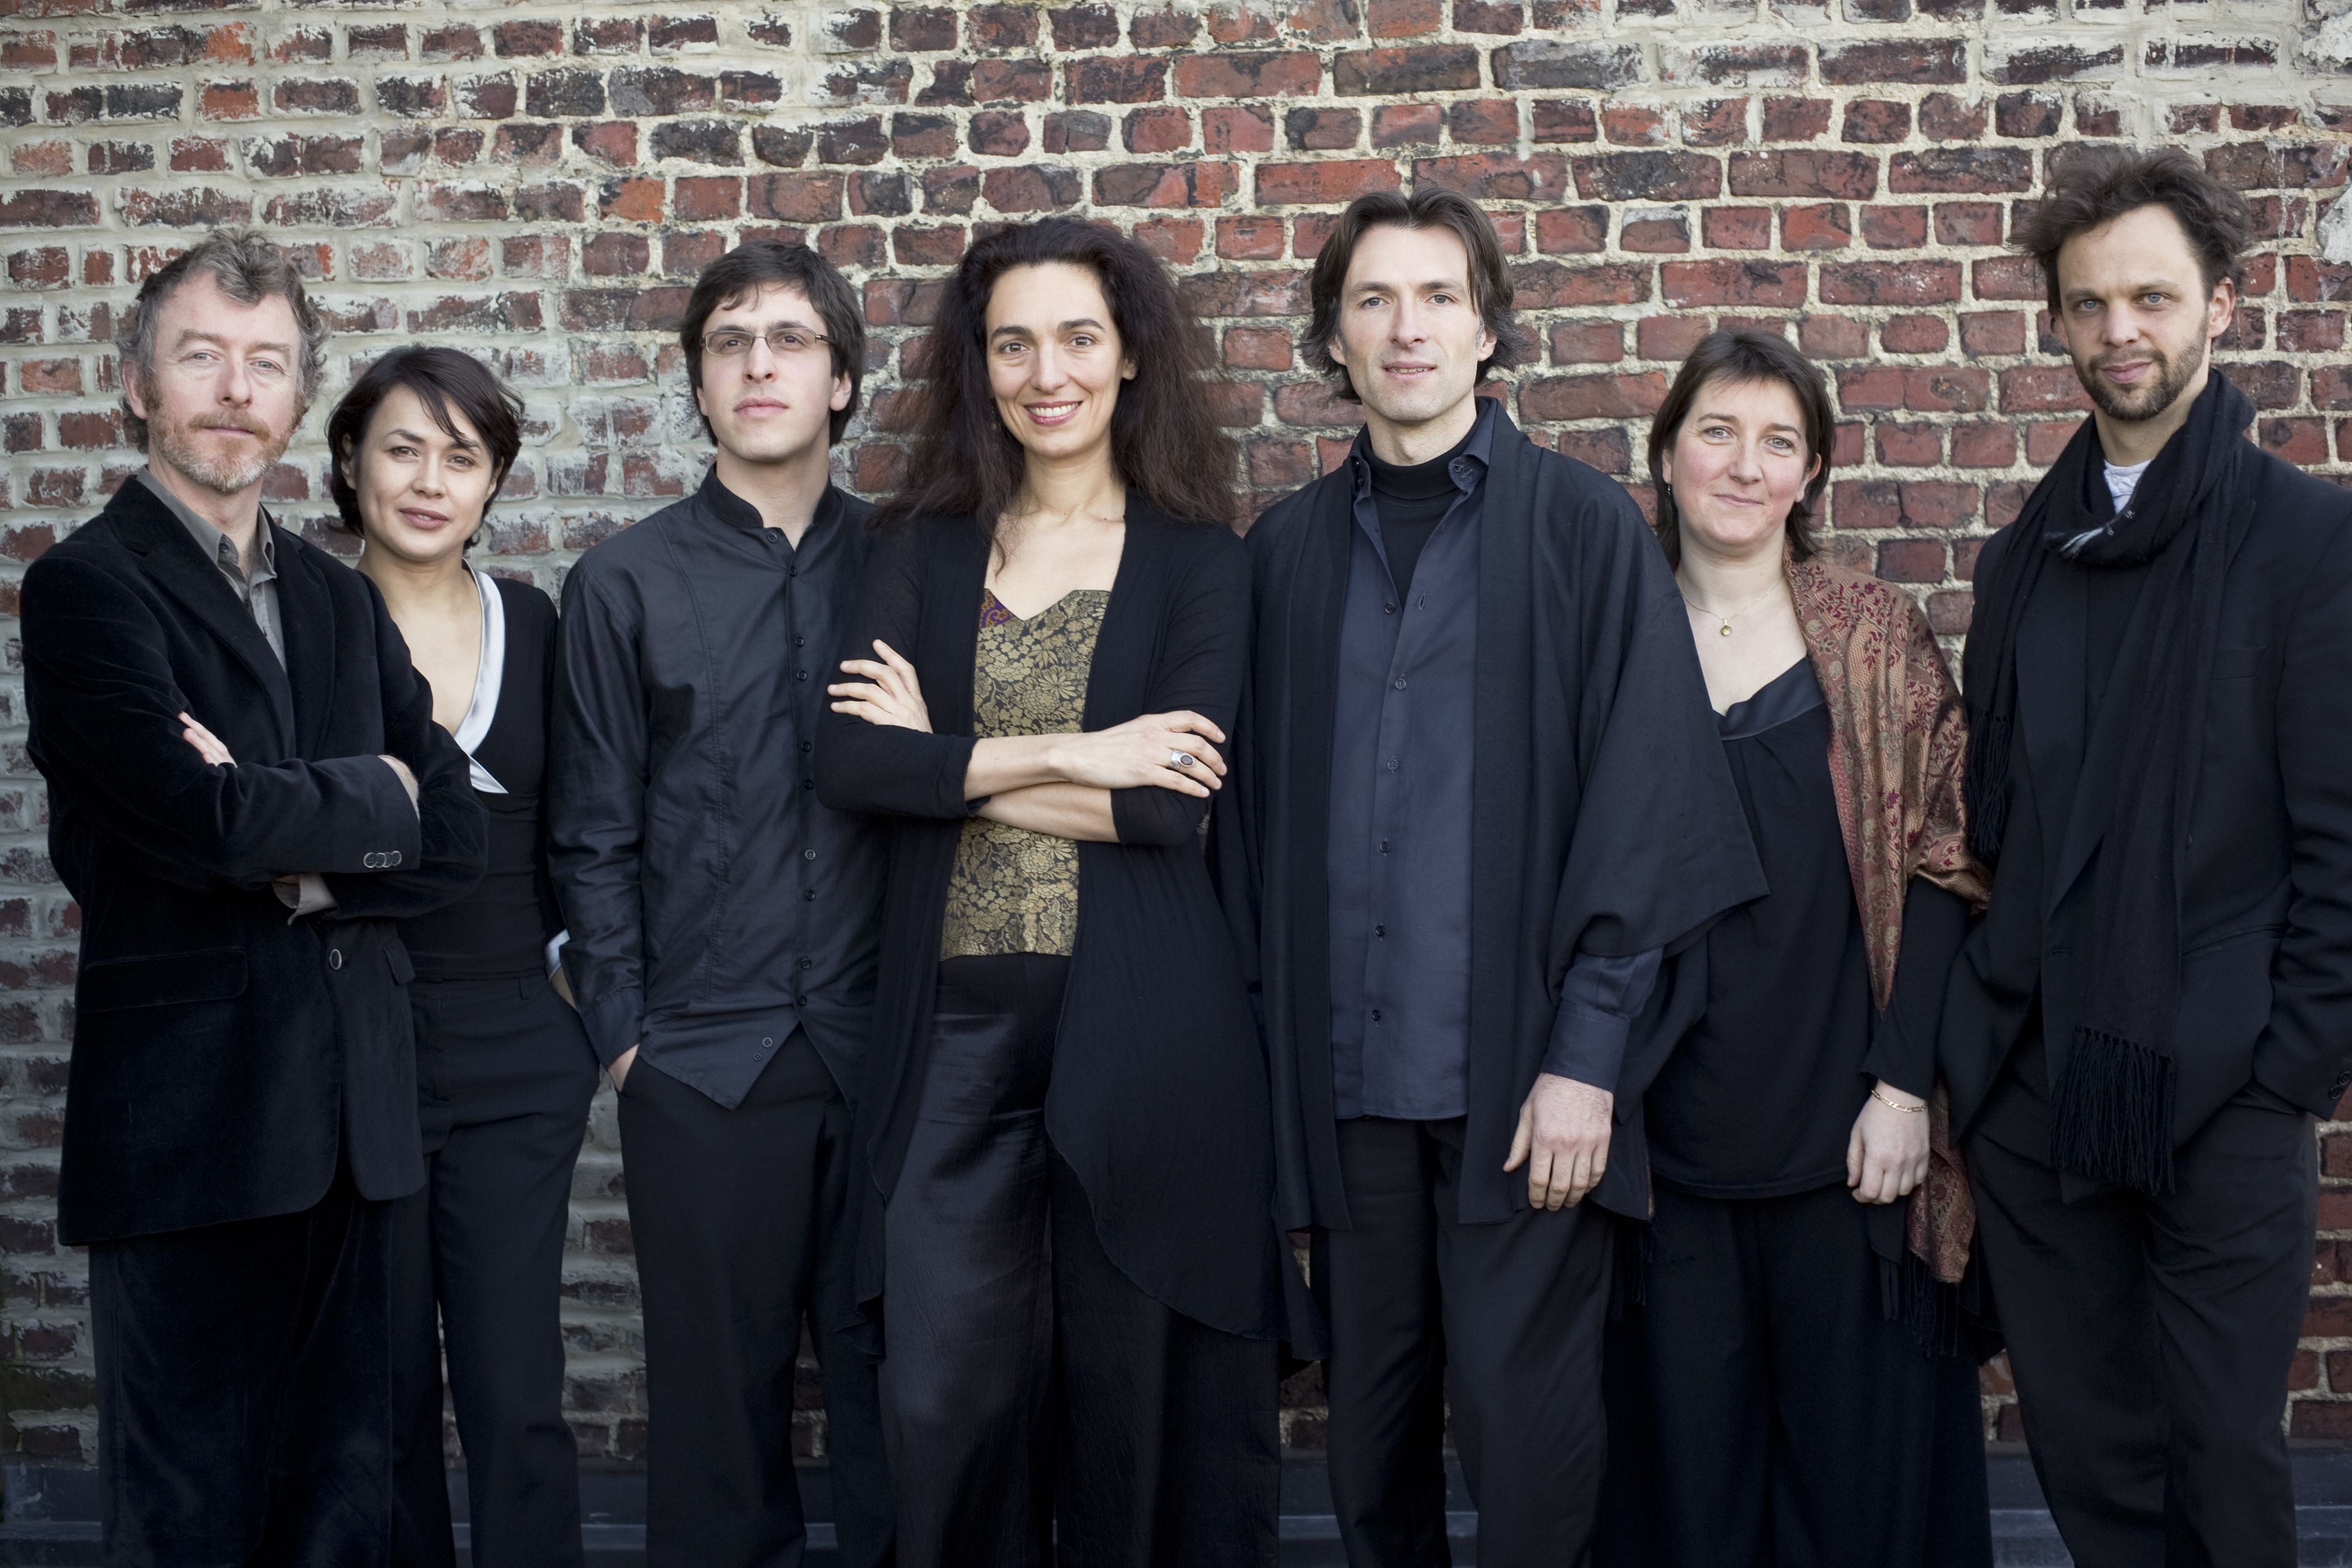 Ensemble Ausonia, le concert baroque